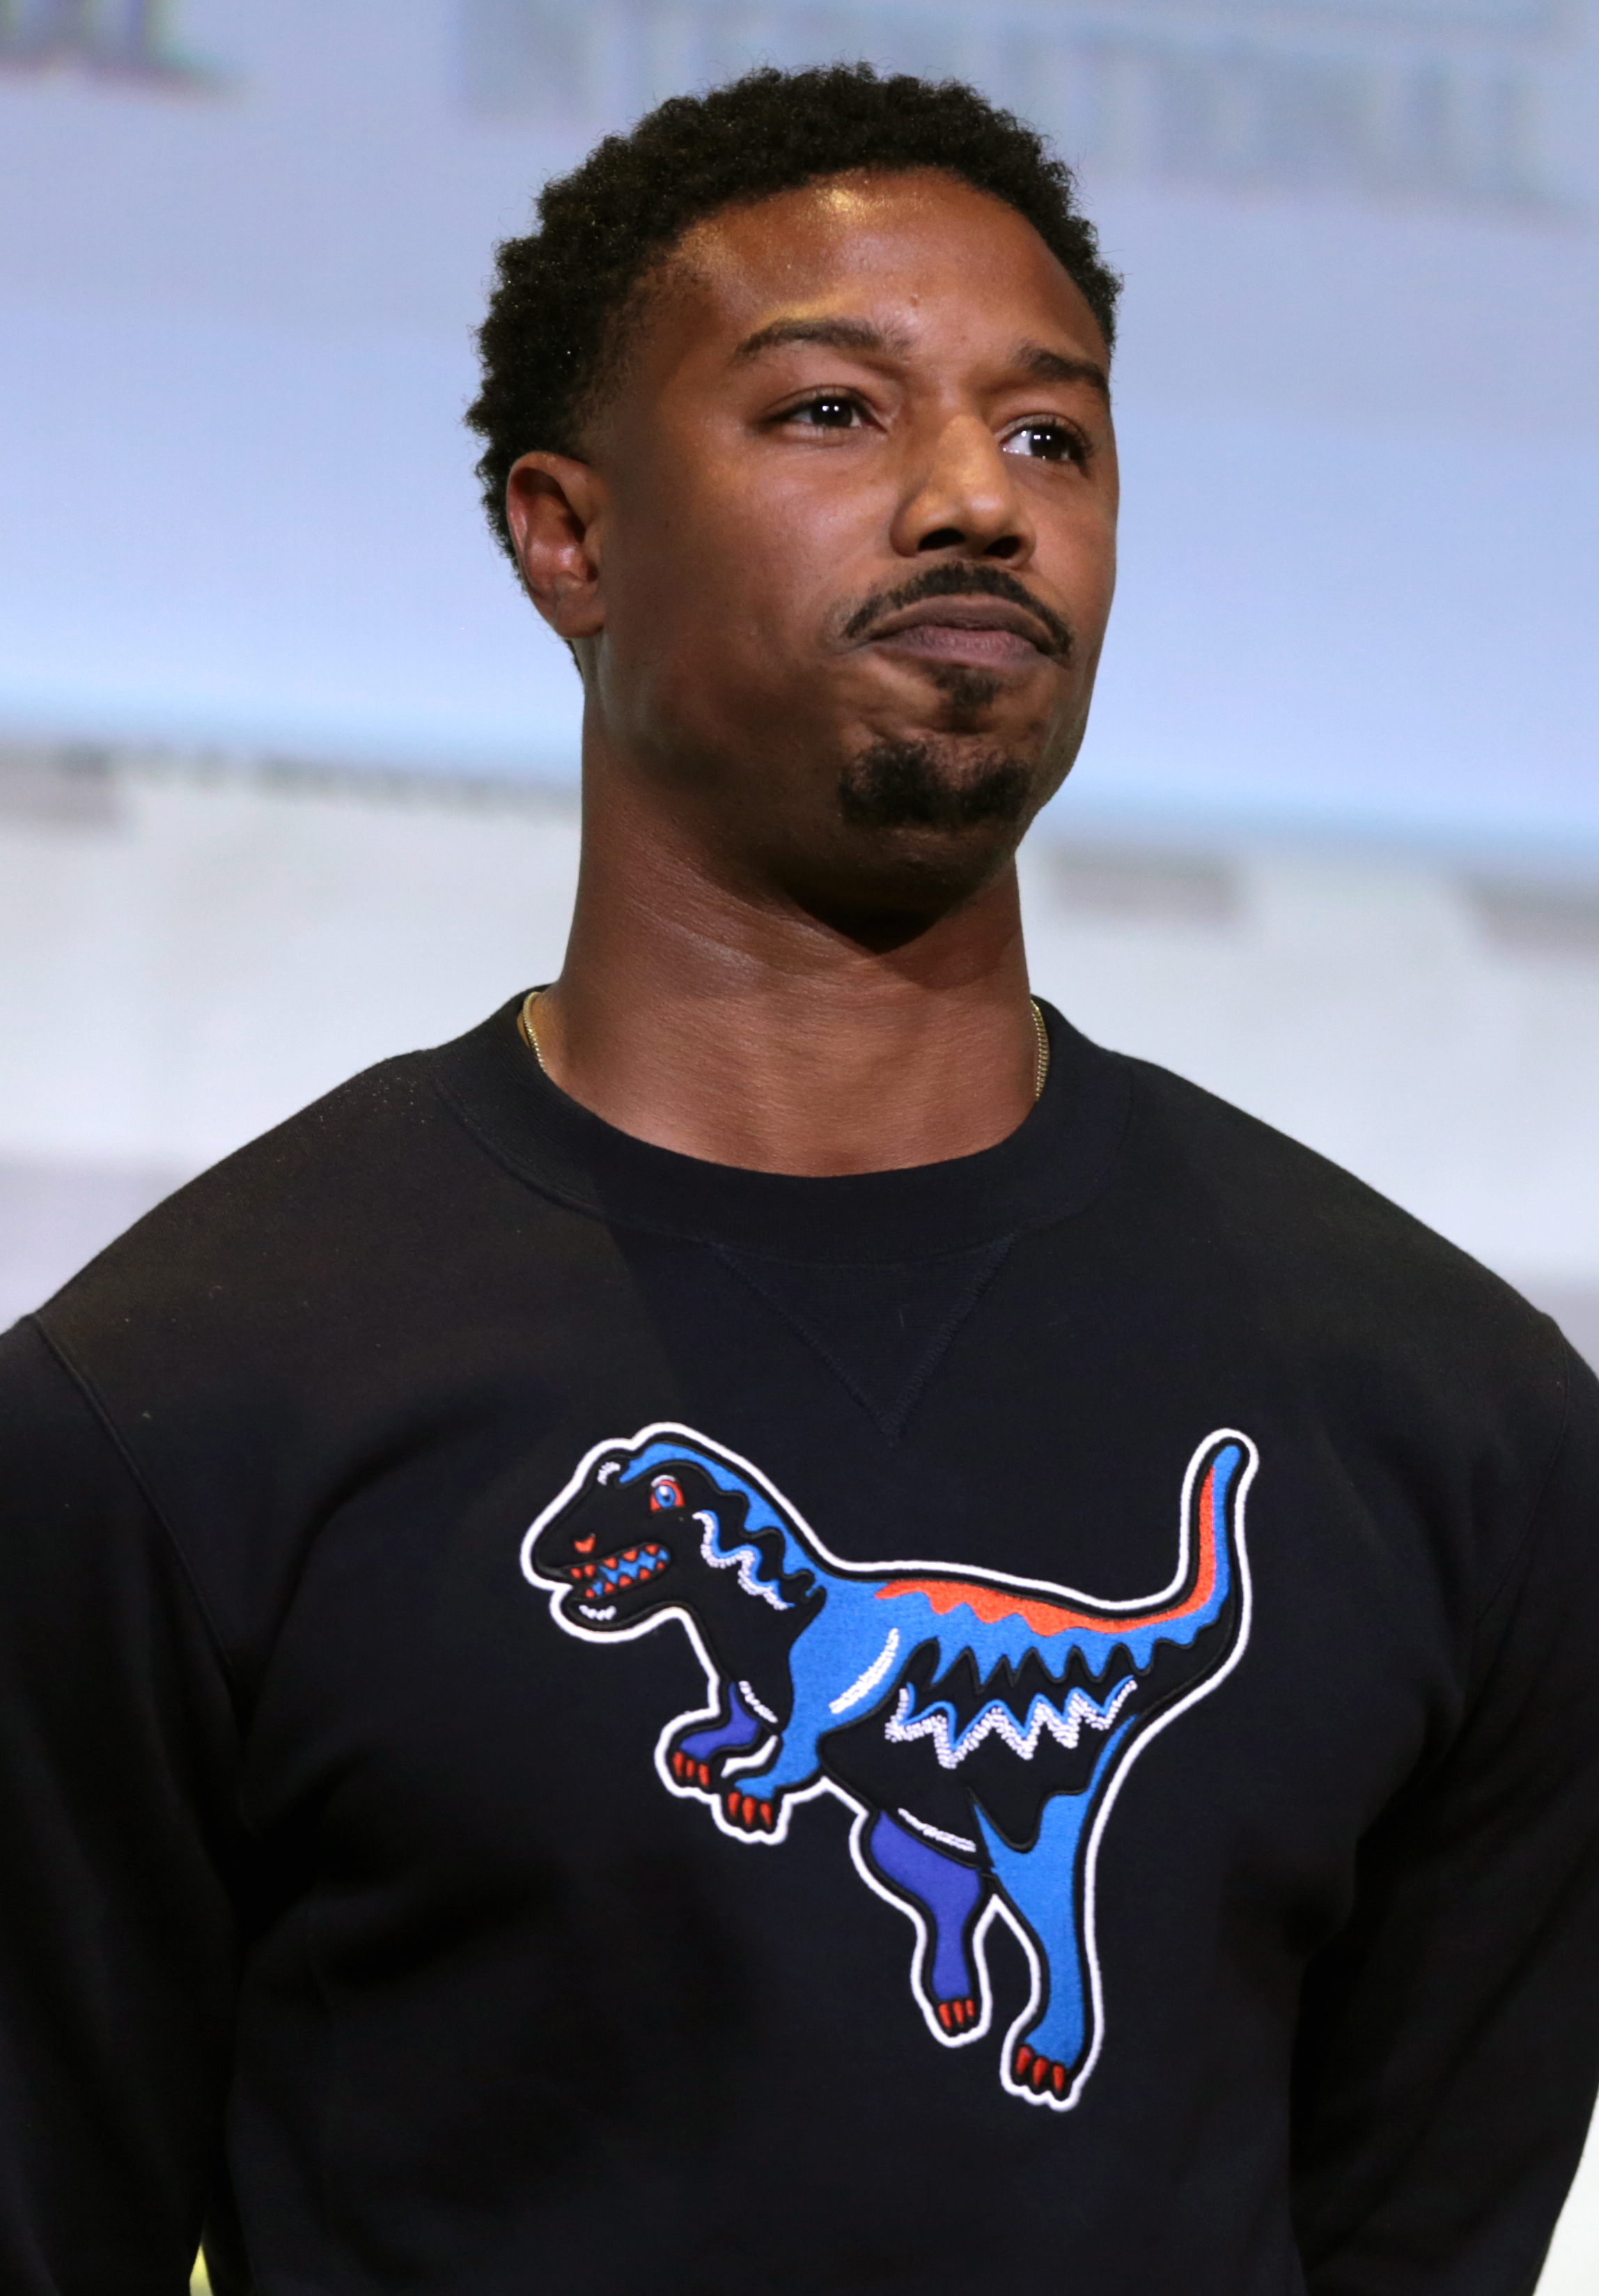 The 31-year old son of father Michael A. Jordan  and mother  Donna Davis Michael B. Jordan in 2018 photo. Michael B. Jordan earned a  million dollar salary - leaving the net worth at 1 million in 2018